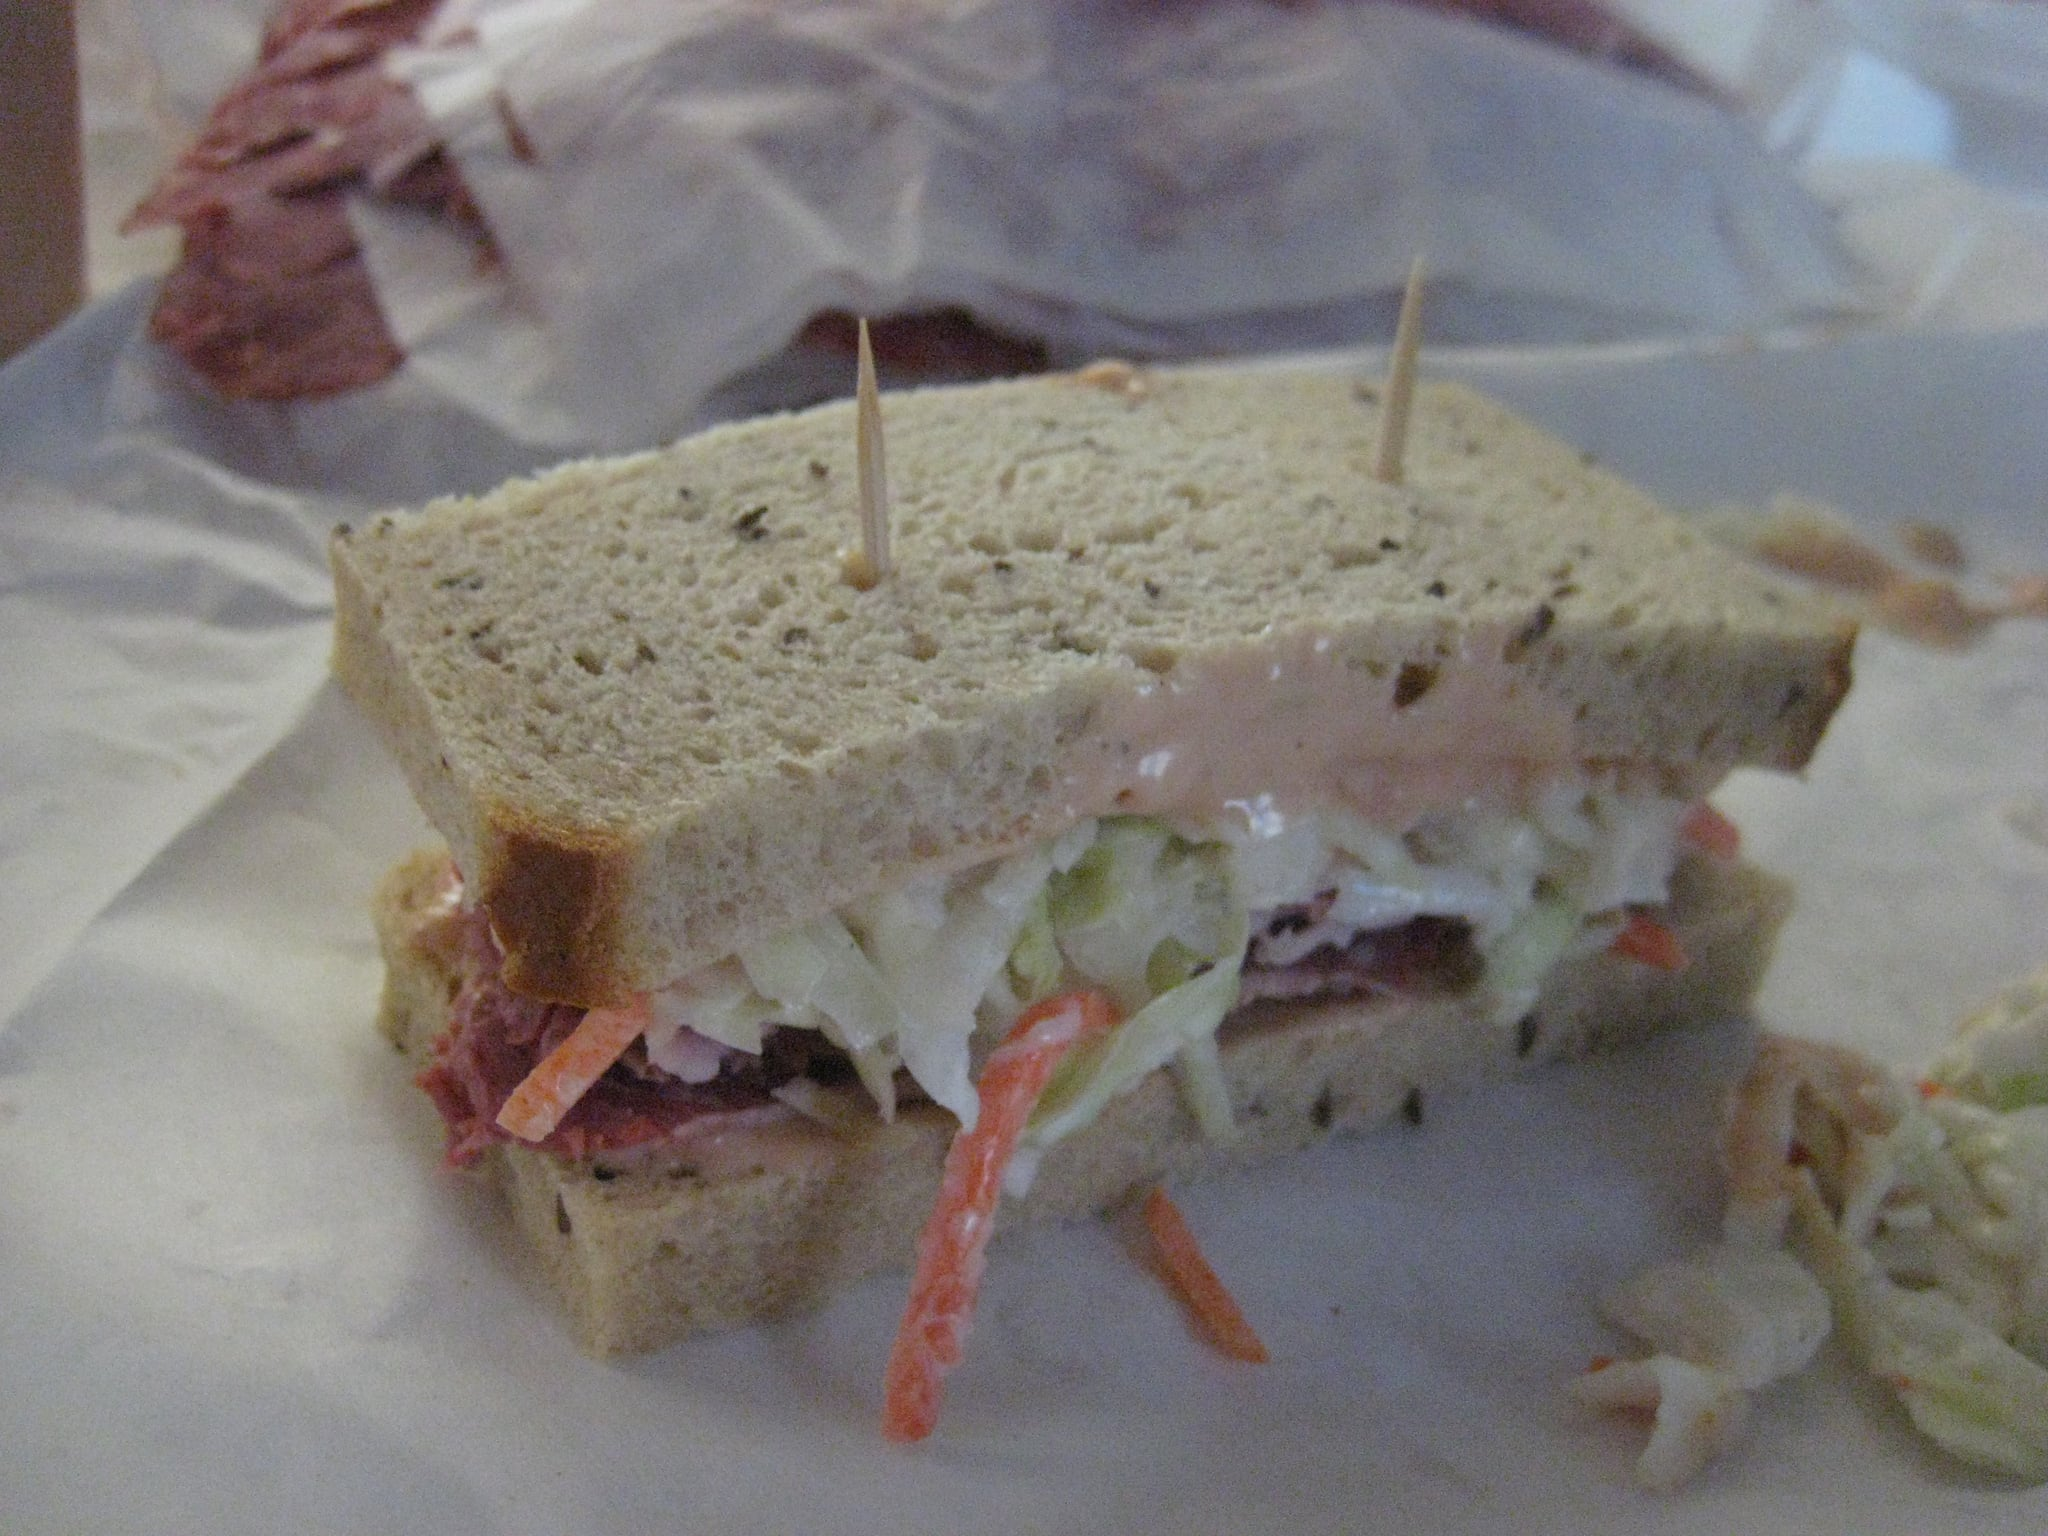 Top with the remaining slice of bread. If desired, to make the messy sandwich easier to eat, stab with two toothpicks.